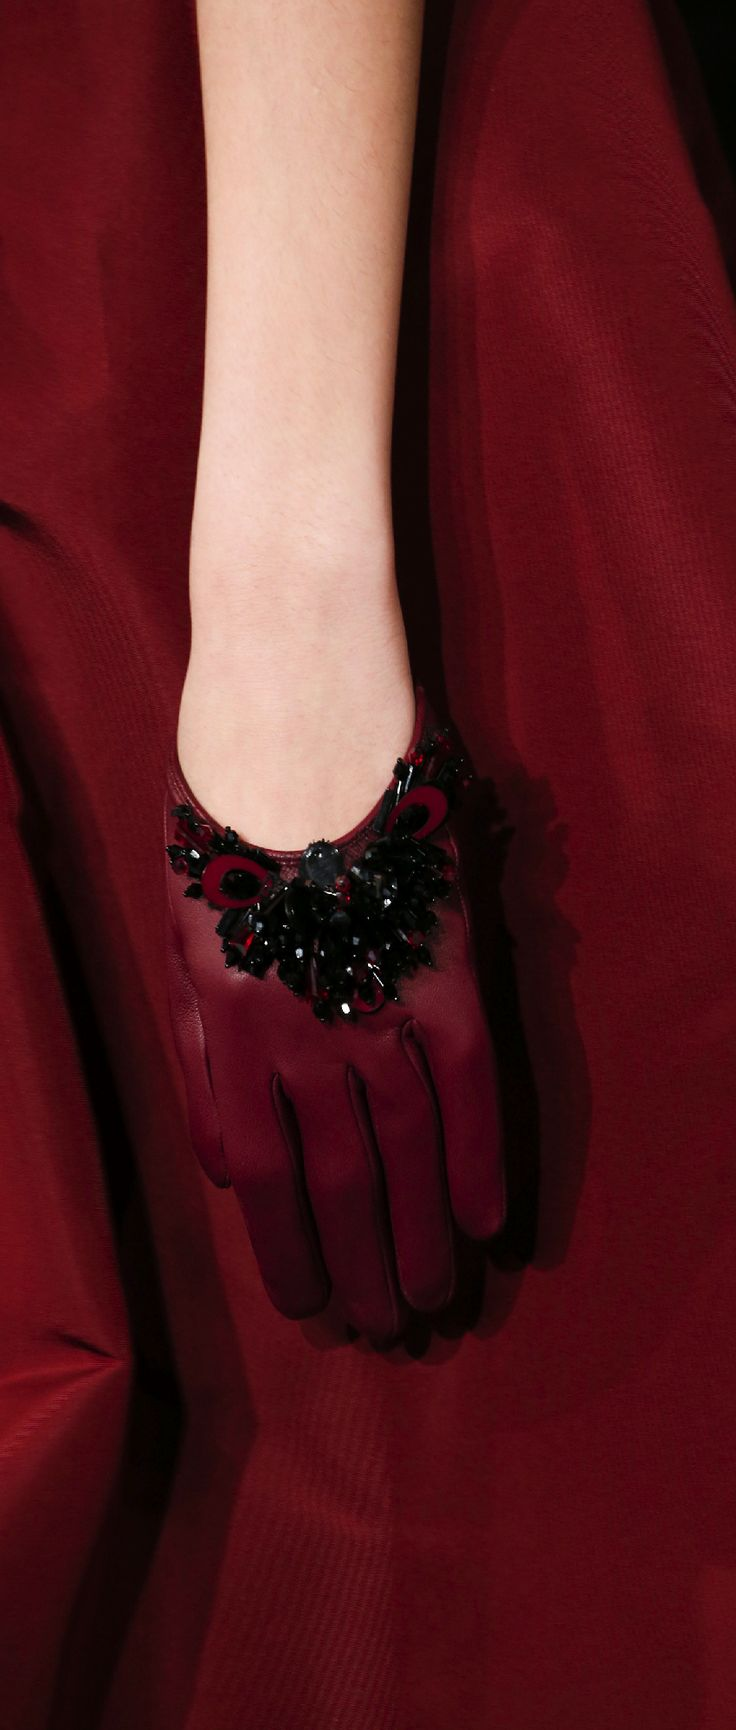 Bejewelled, bedazzled, and becoming. Oscar De La Renta prepares us with a sneak peek at his fall 2016 collection.